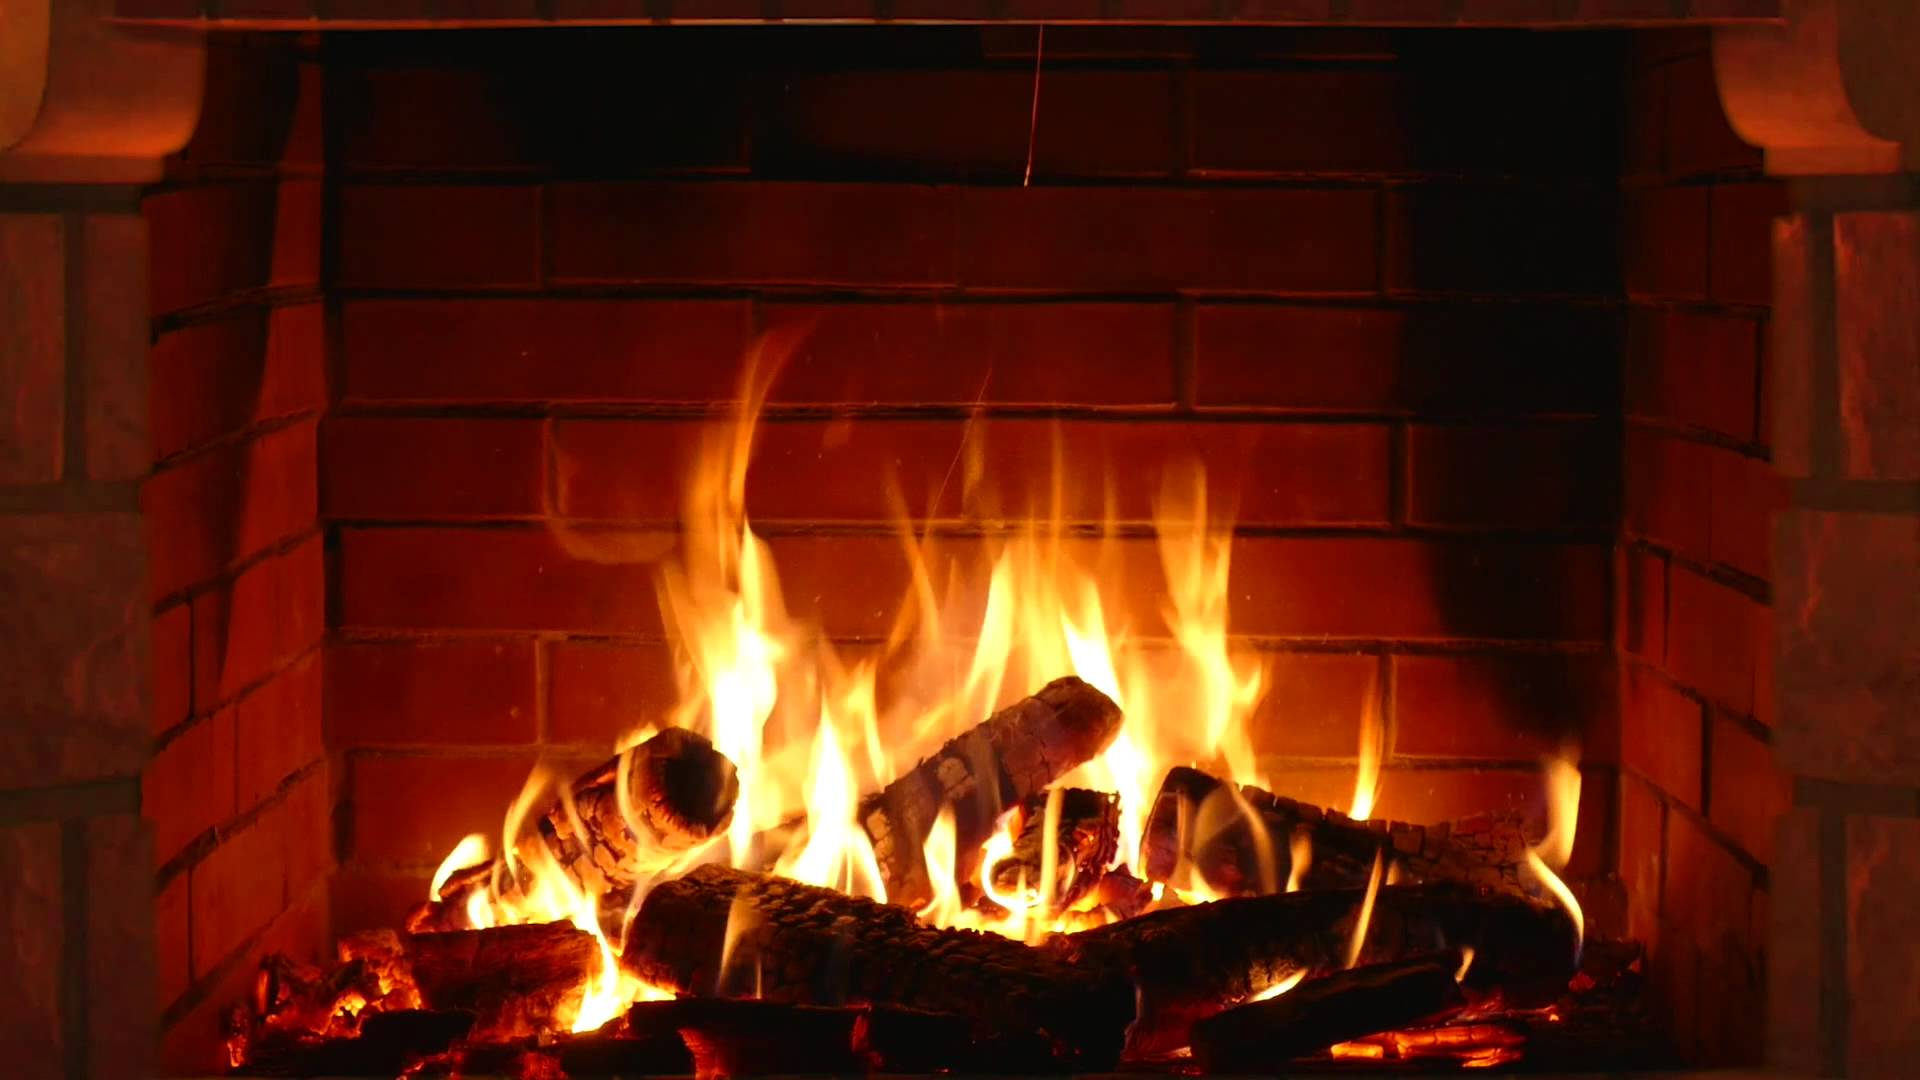 The Log Fire Open Clasp S Blog